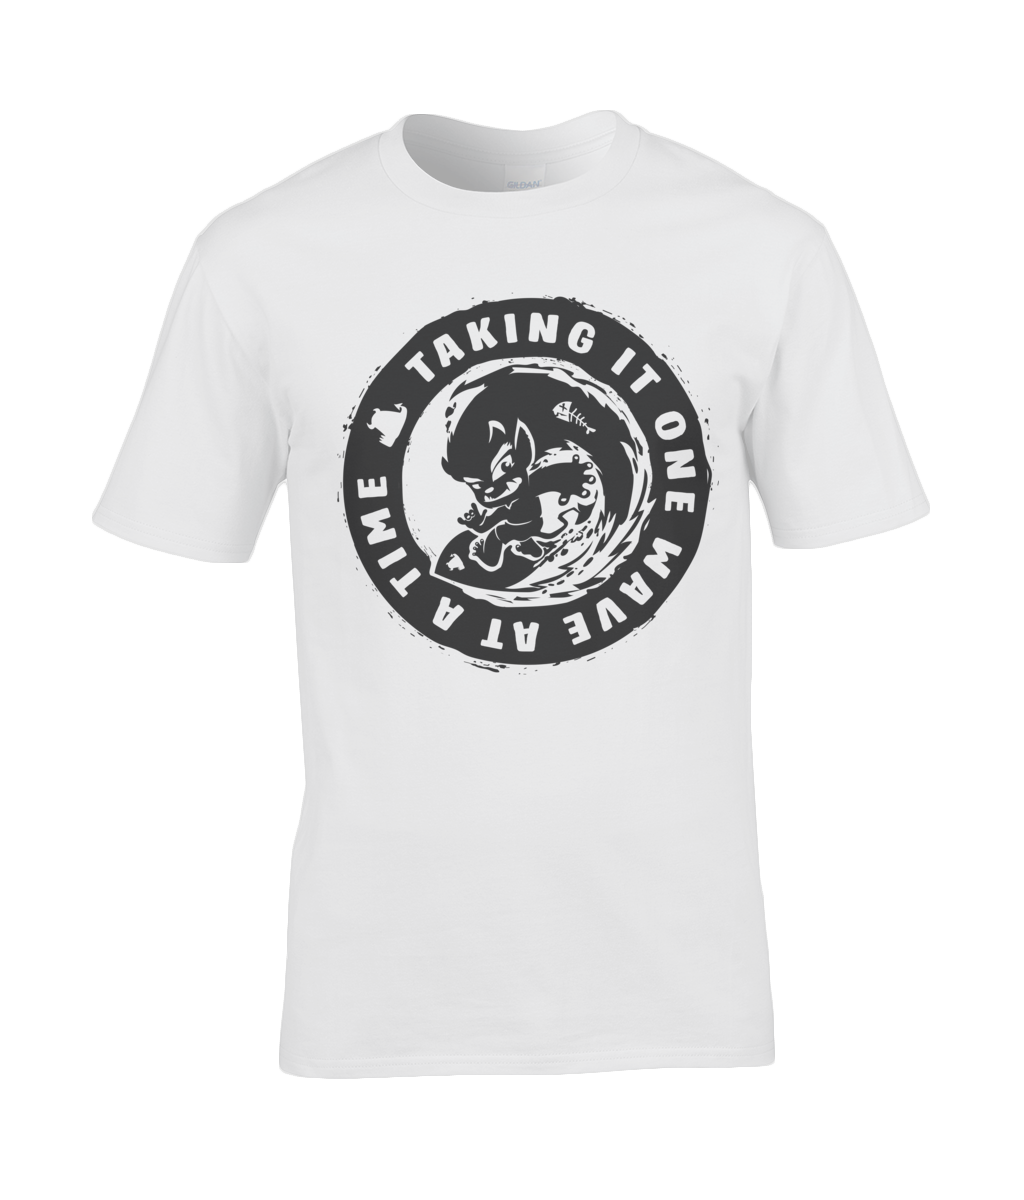 Surf Beastie • Taking it one step at a time • Men - Beasties Clothing